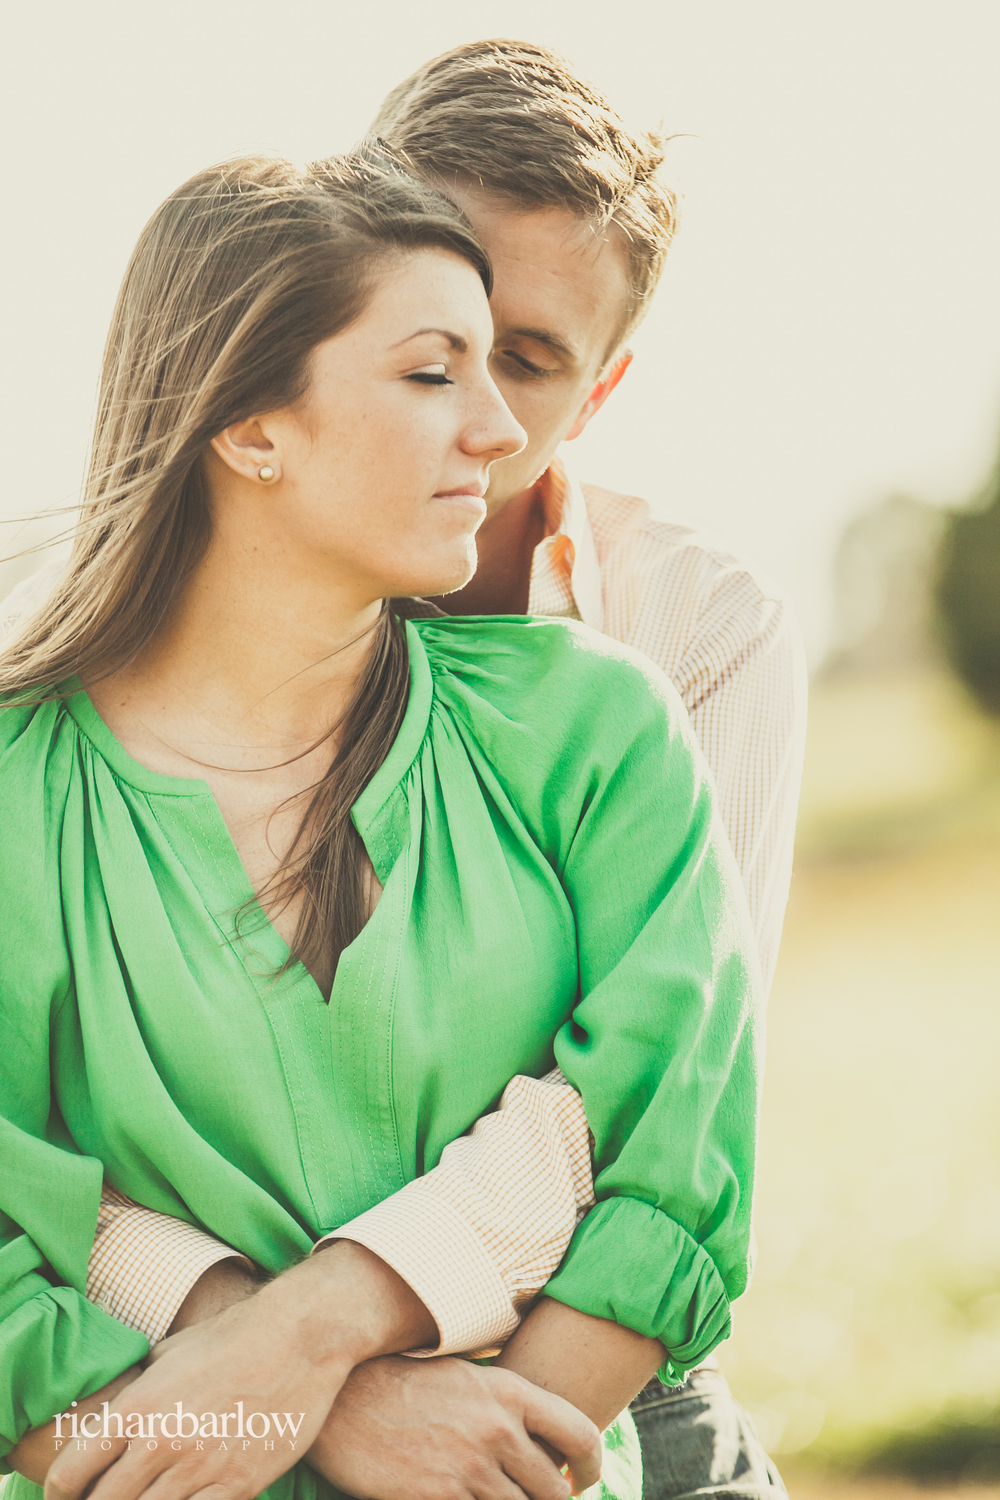 richard barlow photography - Graham and Lauren Engagement Session Wake Forest-18.jpg